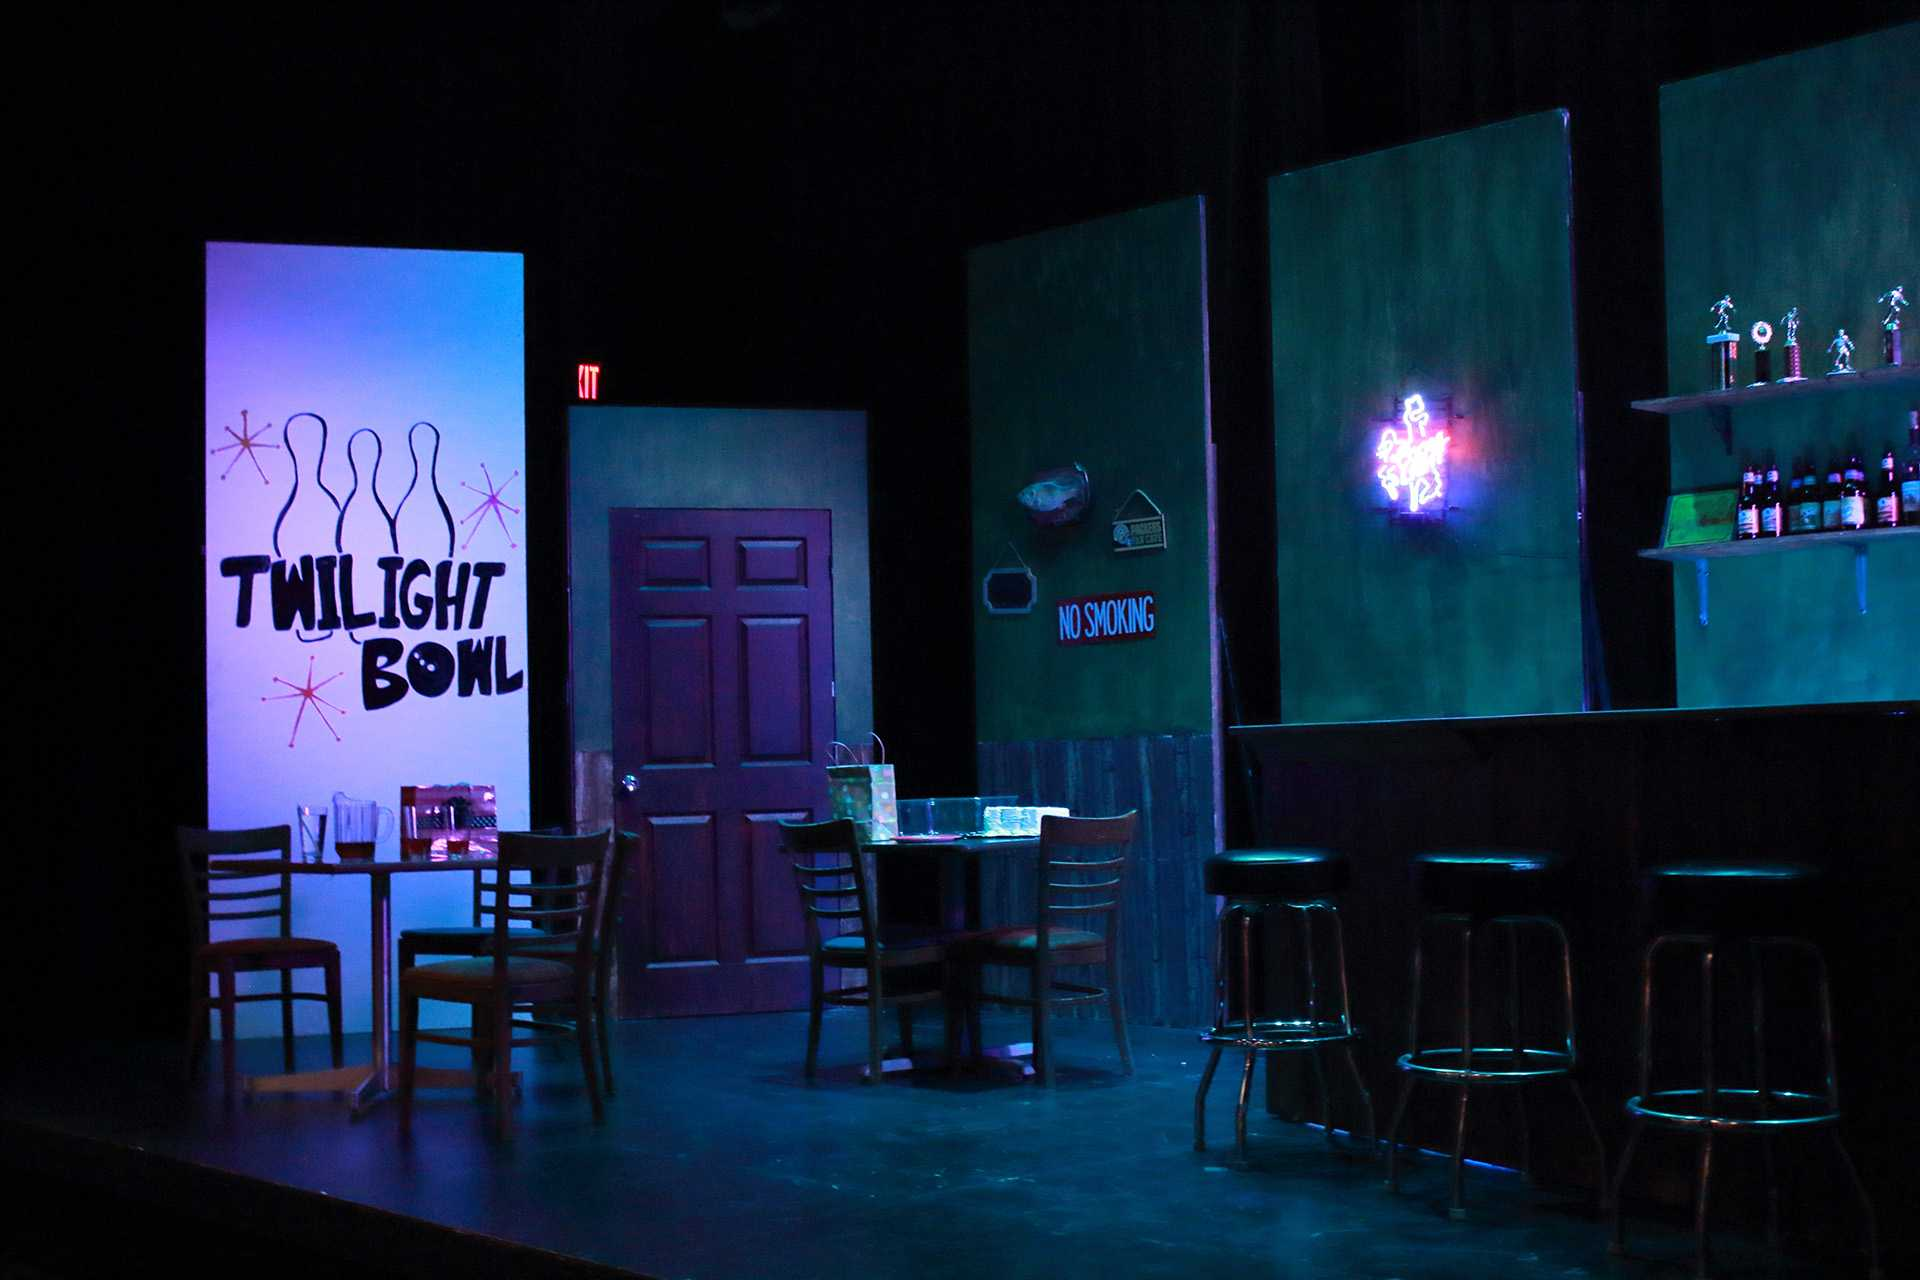 A scene set up in a dress rehearsal at the Theatre Building on Wednesday, Oct. 18, 2017. The Twilight Bowl will be preformed on Friday and is about young women making tough decisions. (Ashley Morris/The Daily Iowan)